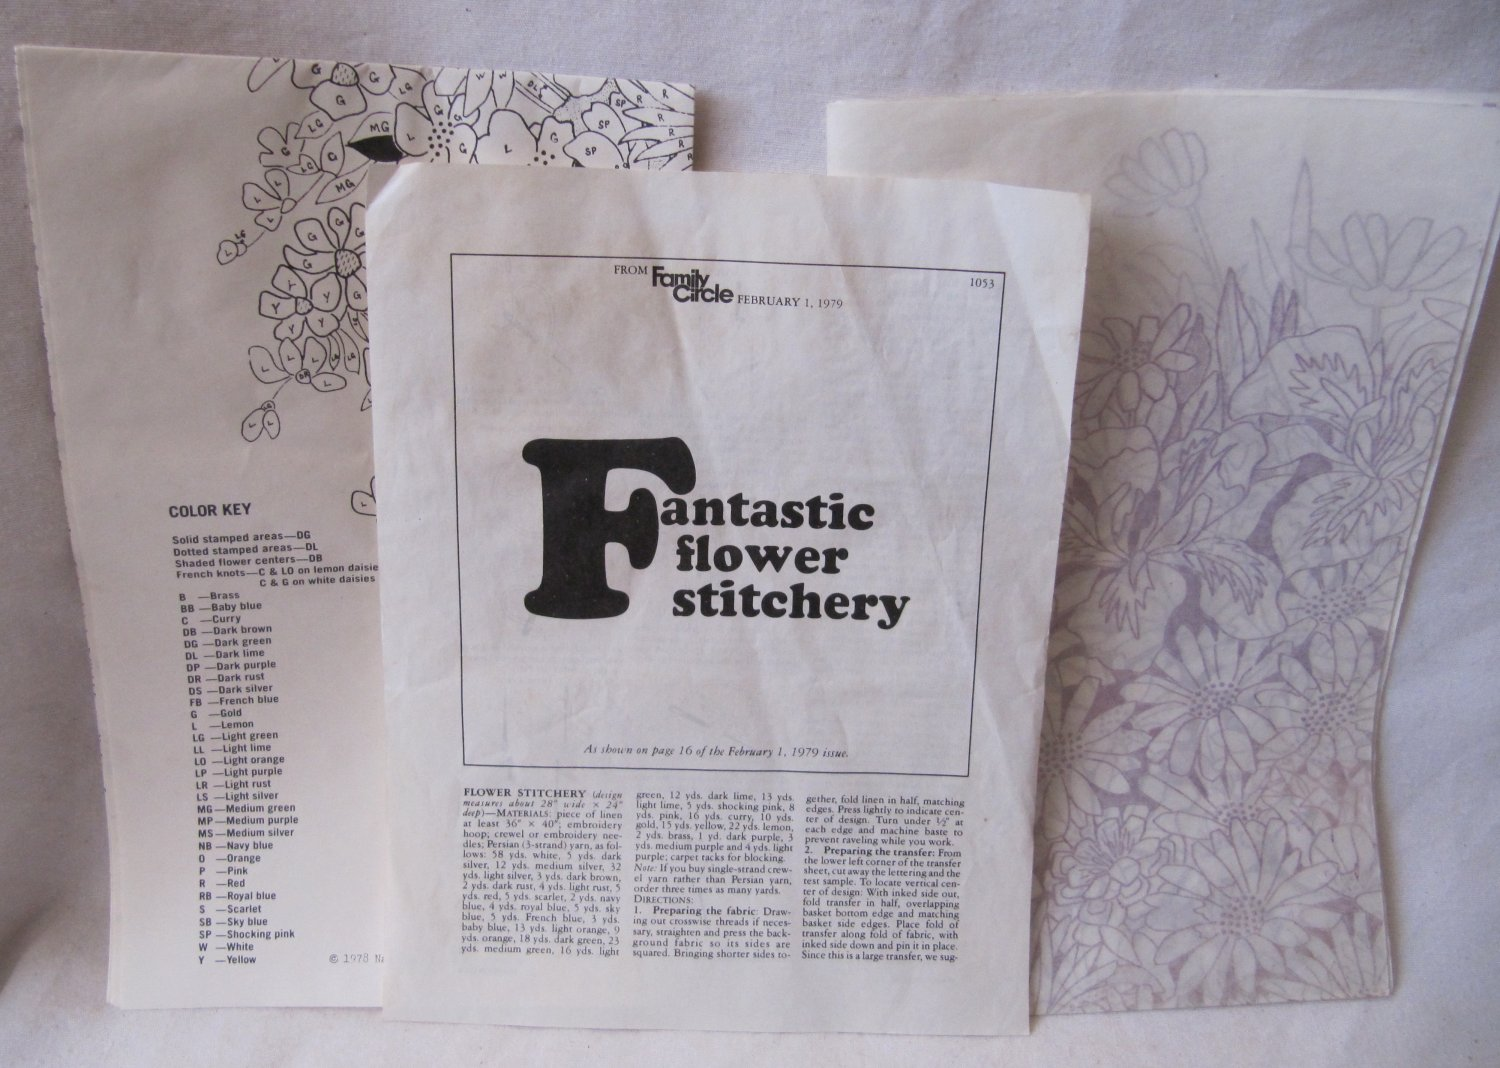 Vintage Fantastic Flower Stitchery Embroidery Pattern Iron-On 0205 National Paragon Family Circle